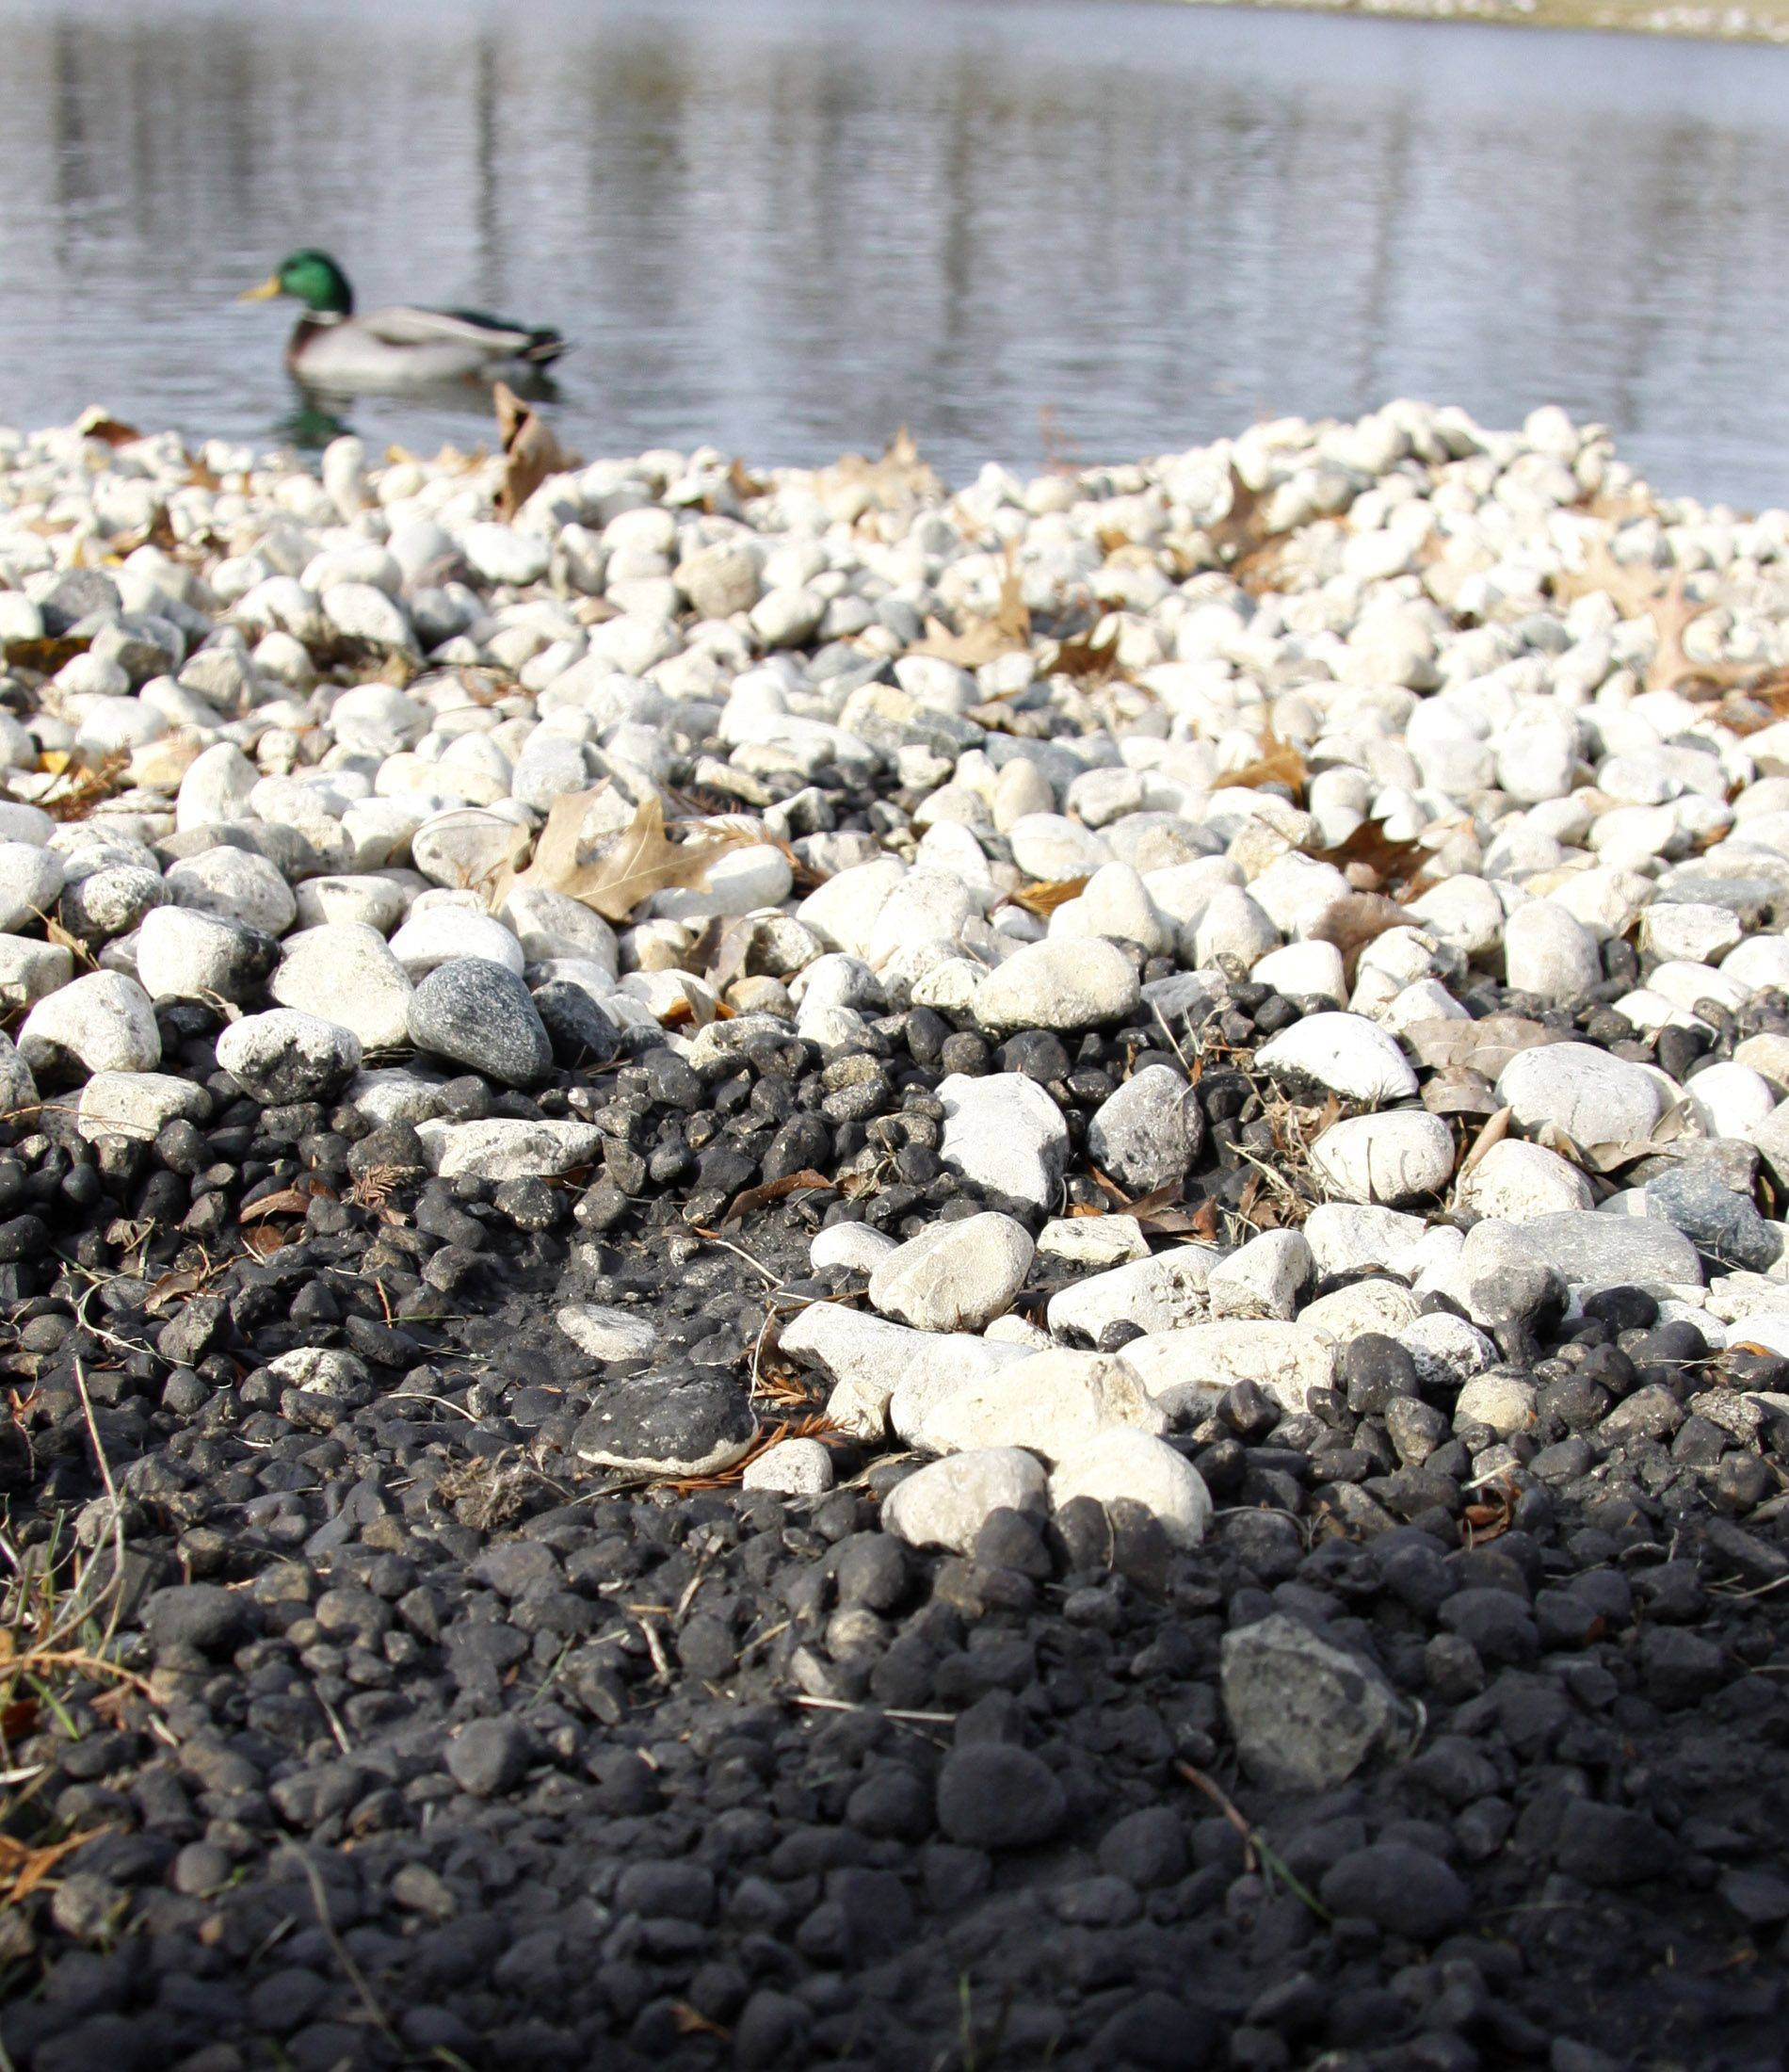 Suspicious black rocks rest beneath light-colored stones at Lombard Lagoon. Lombard Park District officials are having some of the rocks analyzed to determine if they might be contaminated.